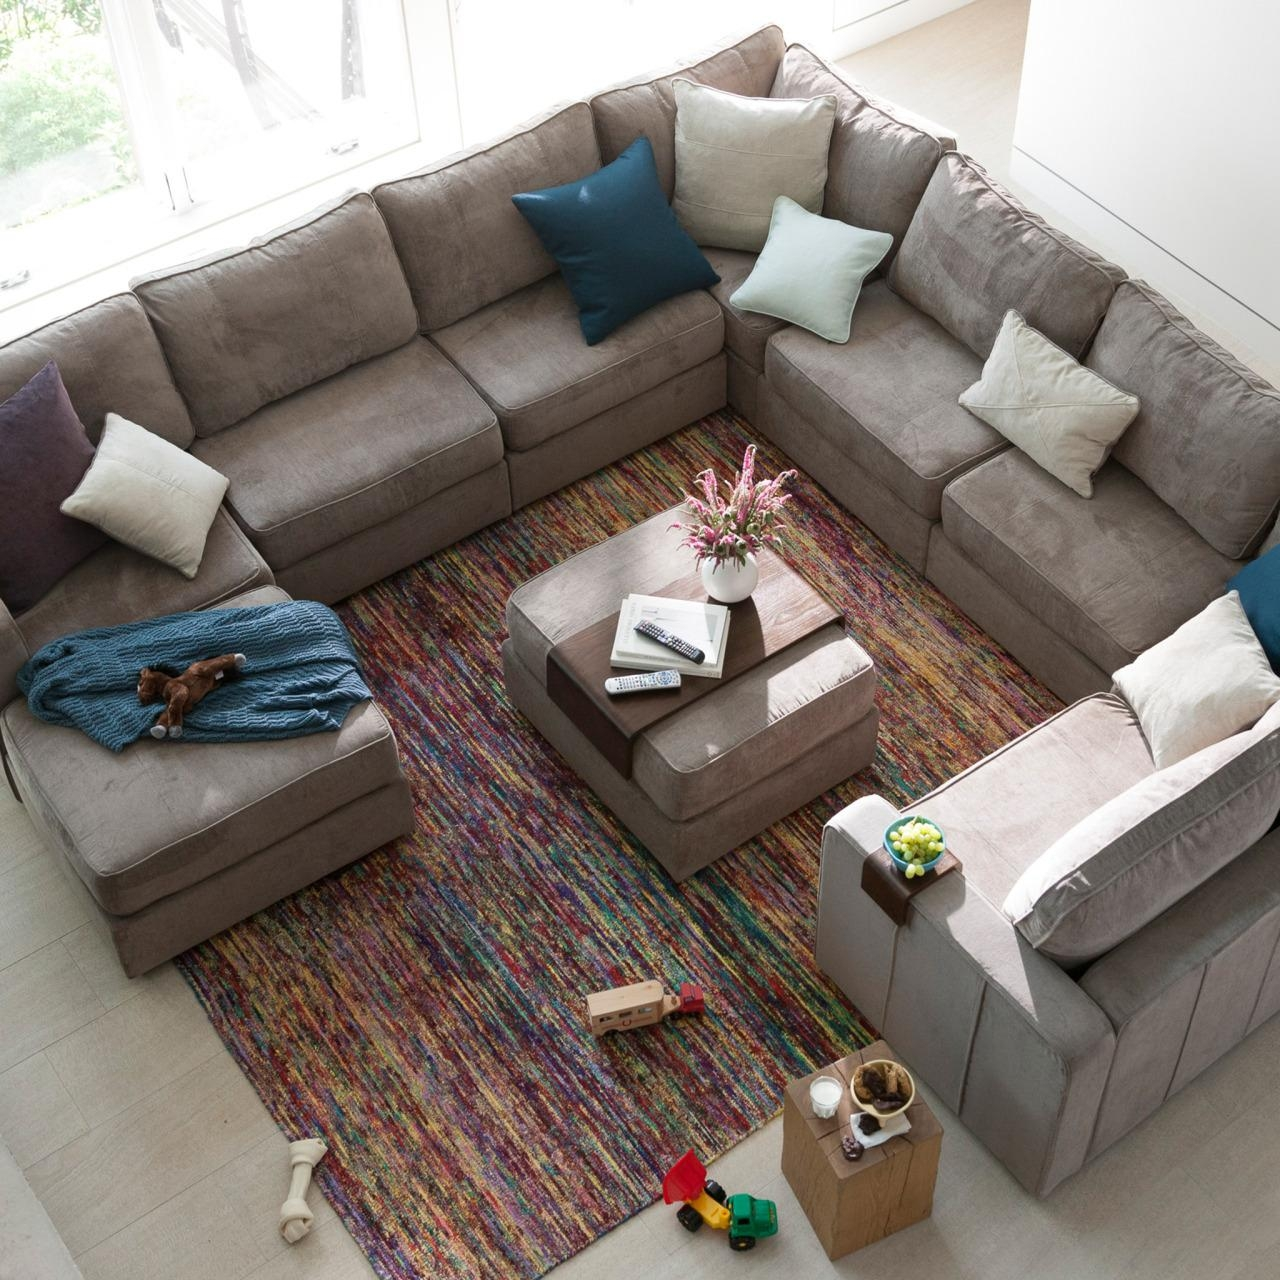 Lovesac — We Make Sactionals, The Most Adaptable Couch In The Pertaining To Love Sac Sofas (Image 9 of 20)